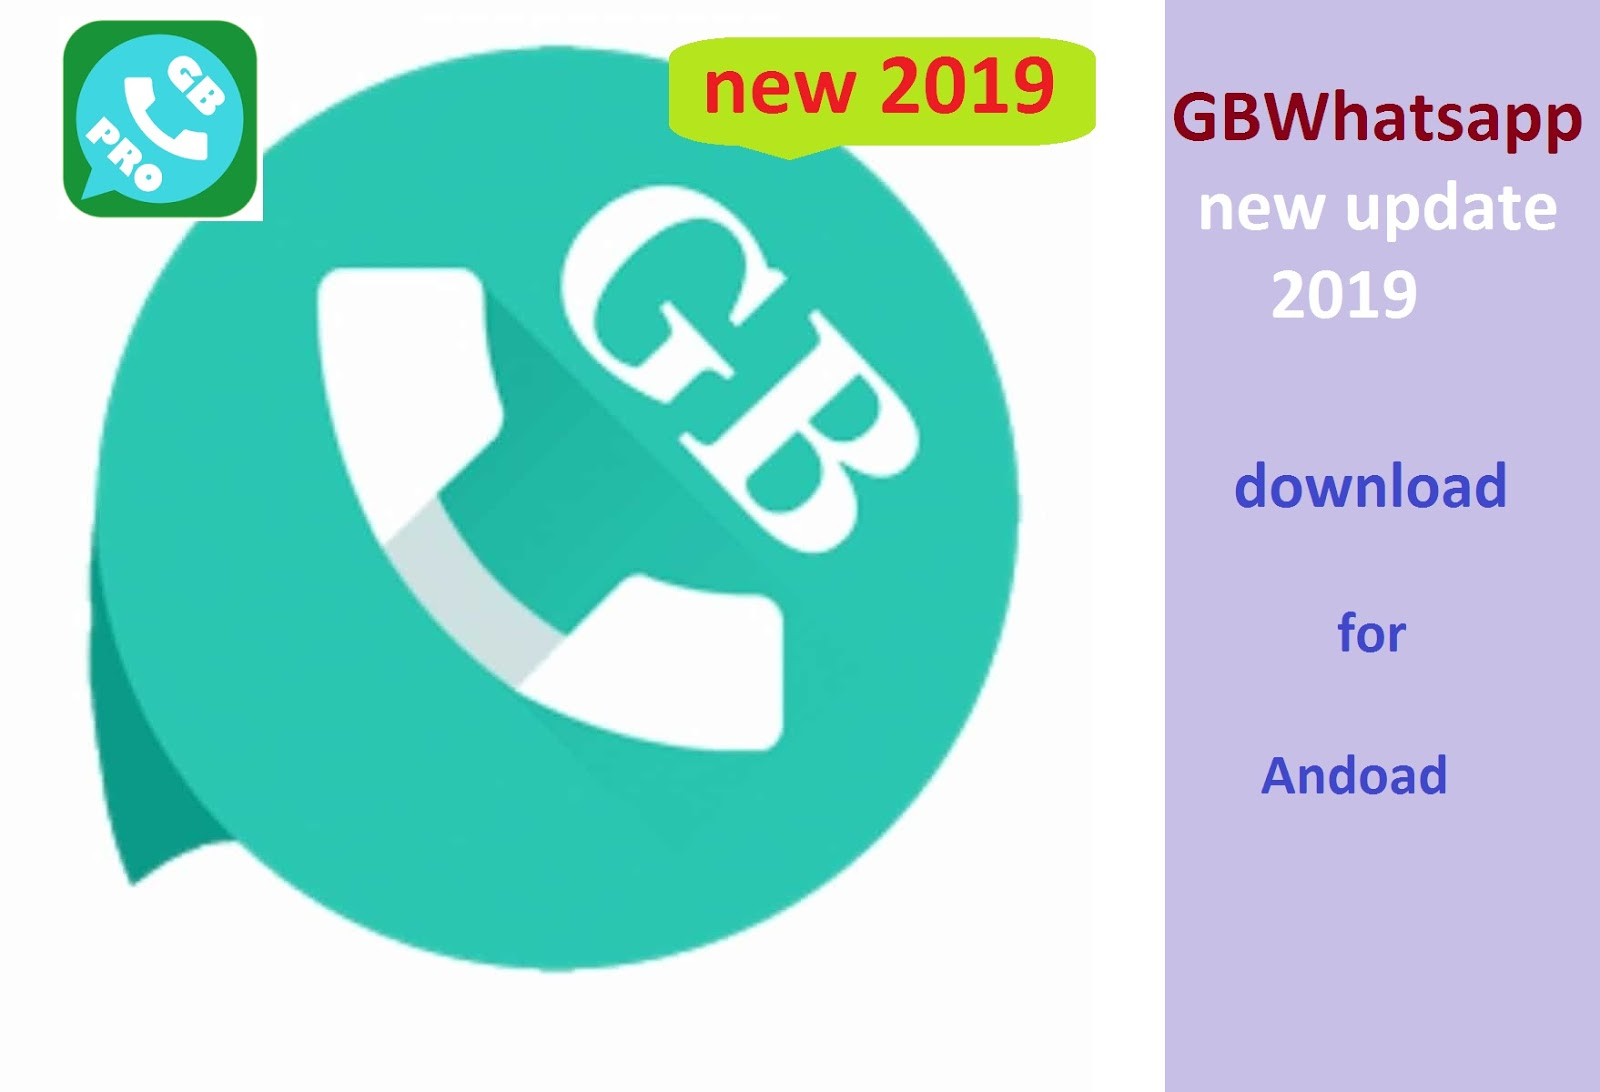 gbwhatsapp apk free download 2019